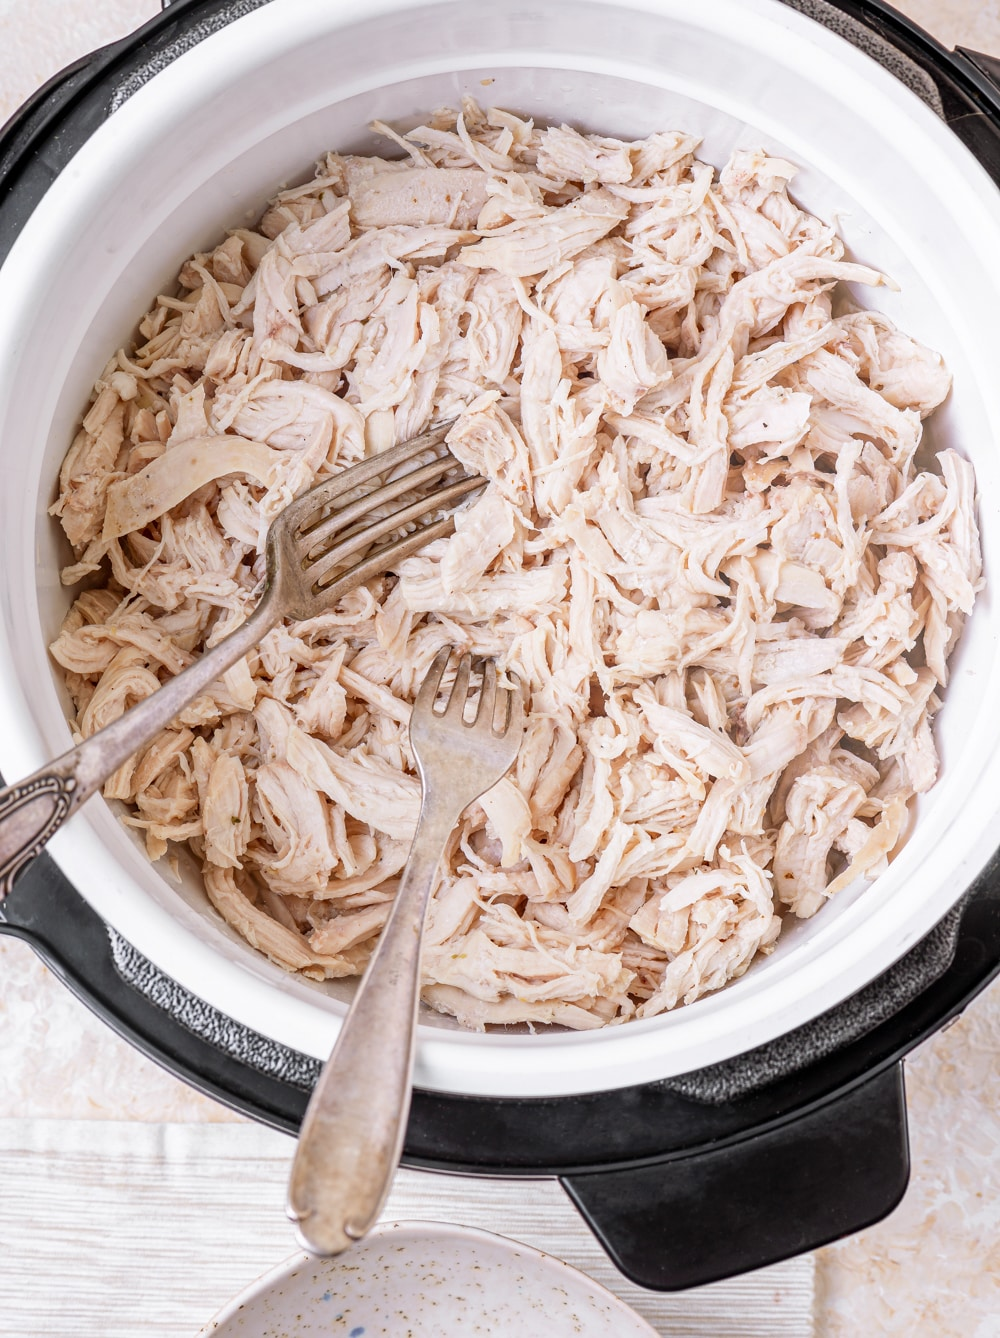 Shredded chicken breasts in an Instant Pot.